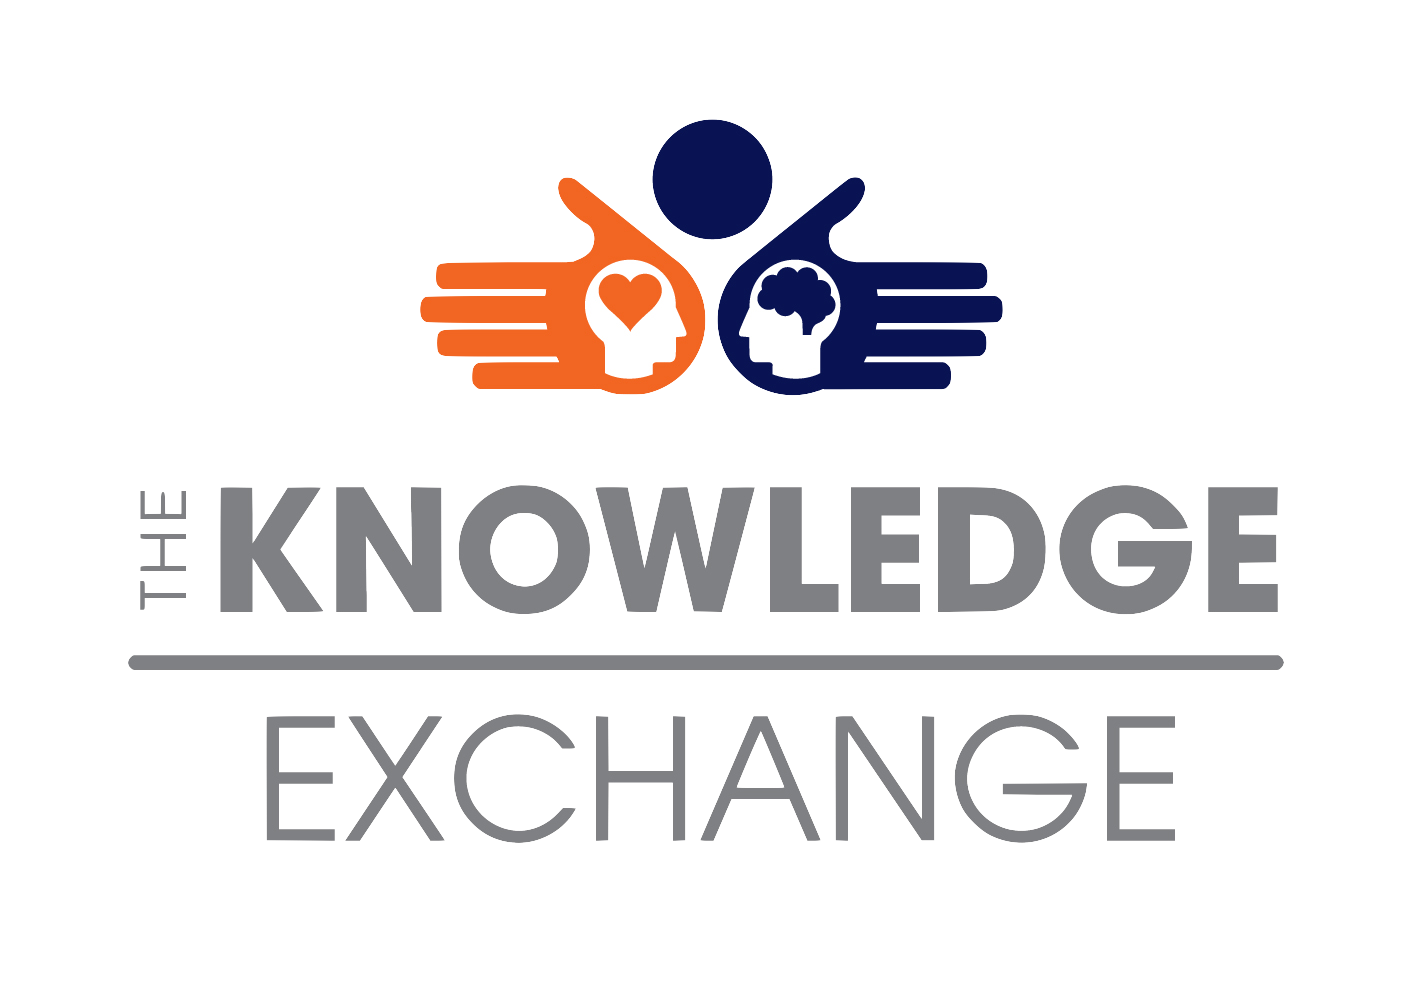 The Knowledge Exchange